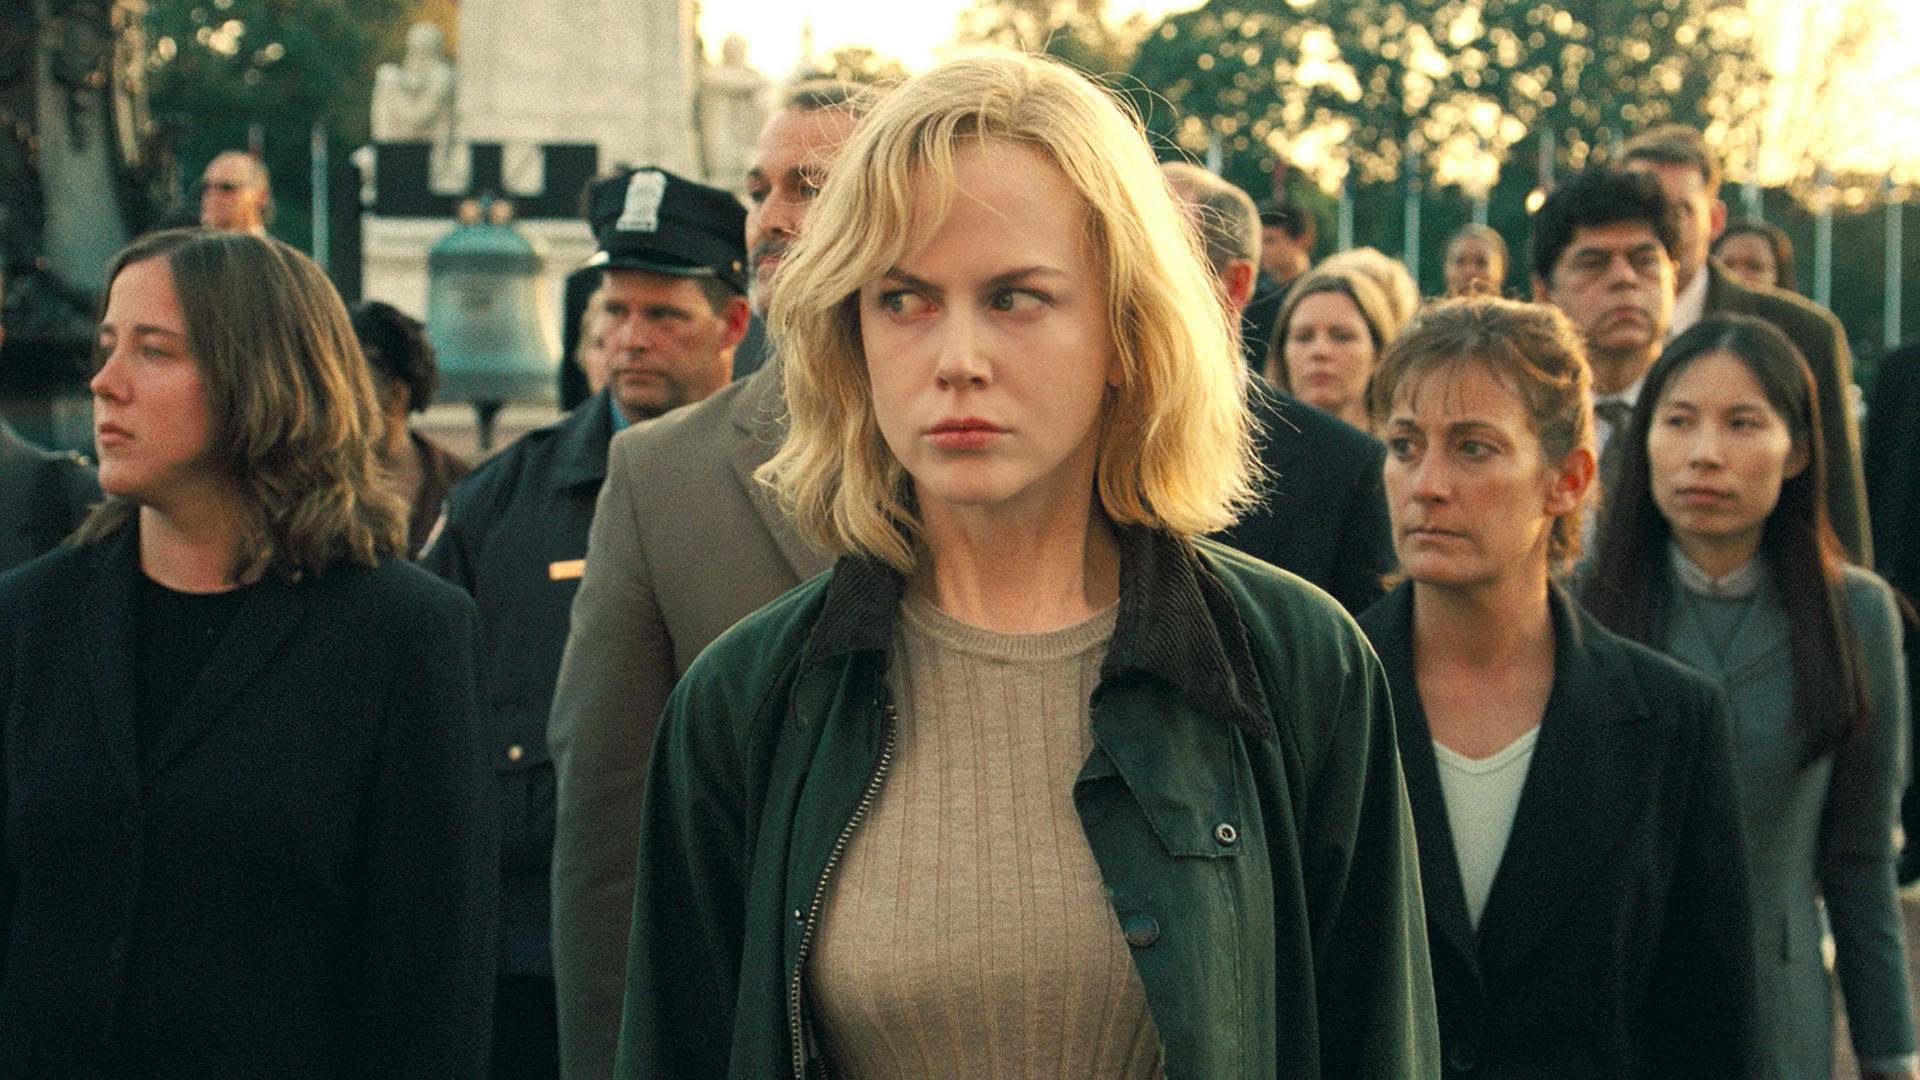 Nicole Kidman tries to blend in among the pod people in The Invasion (2007)